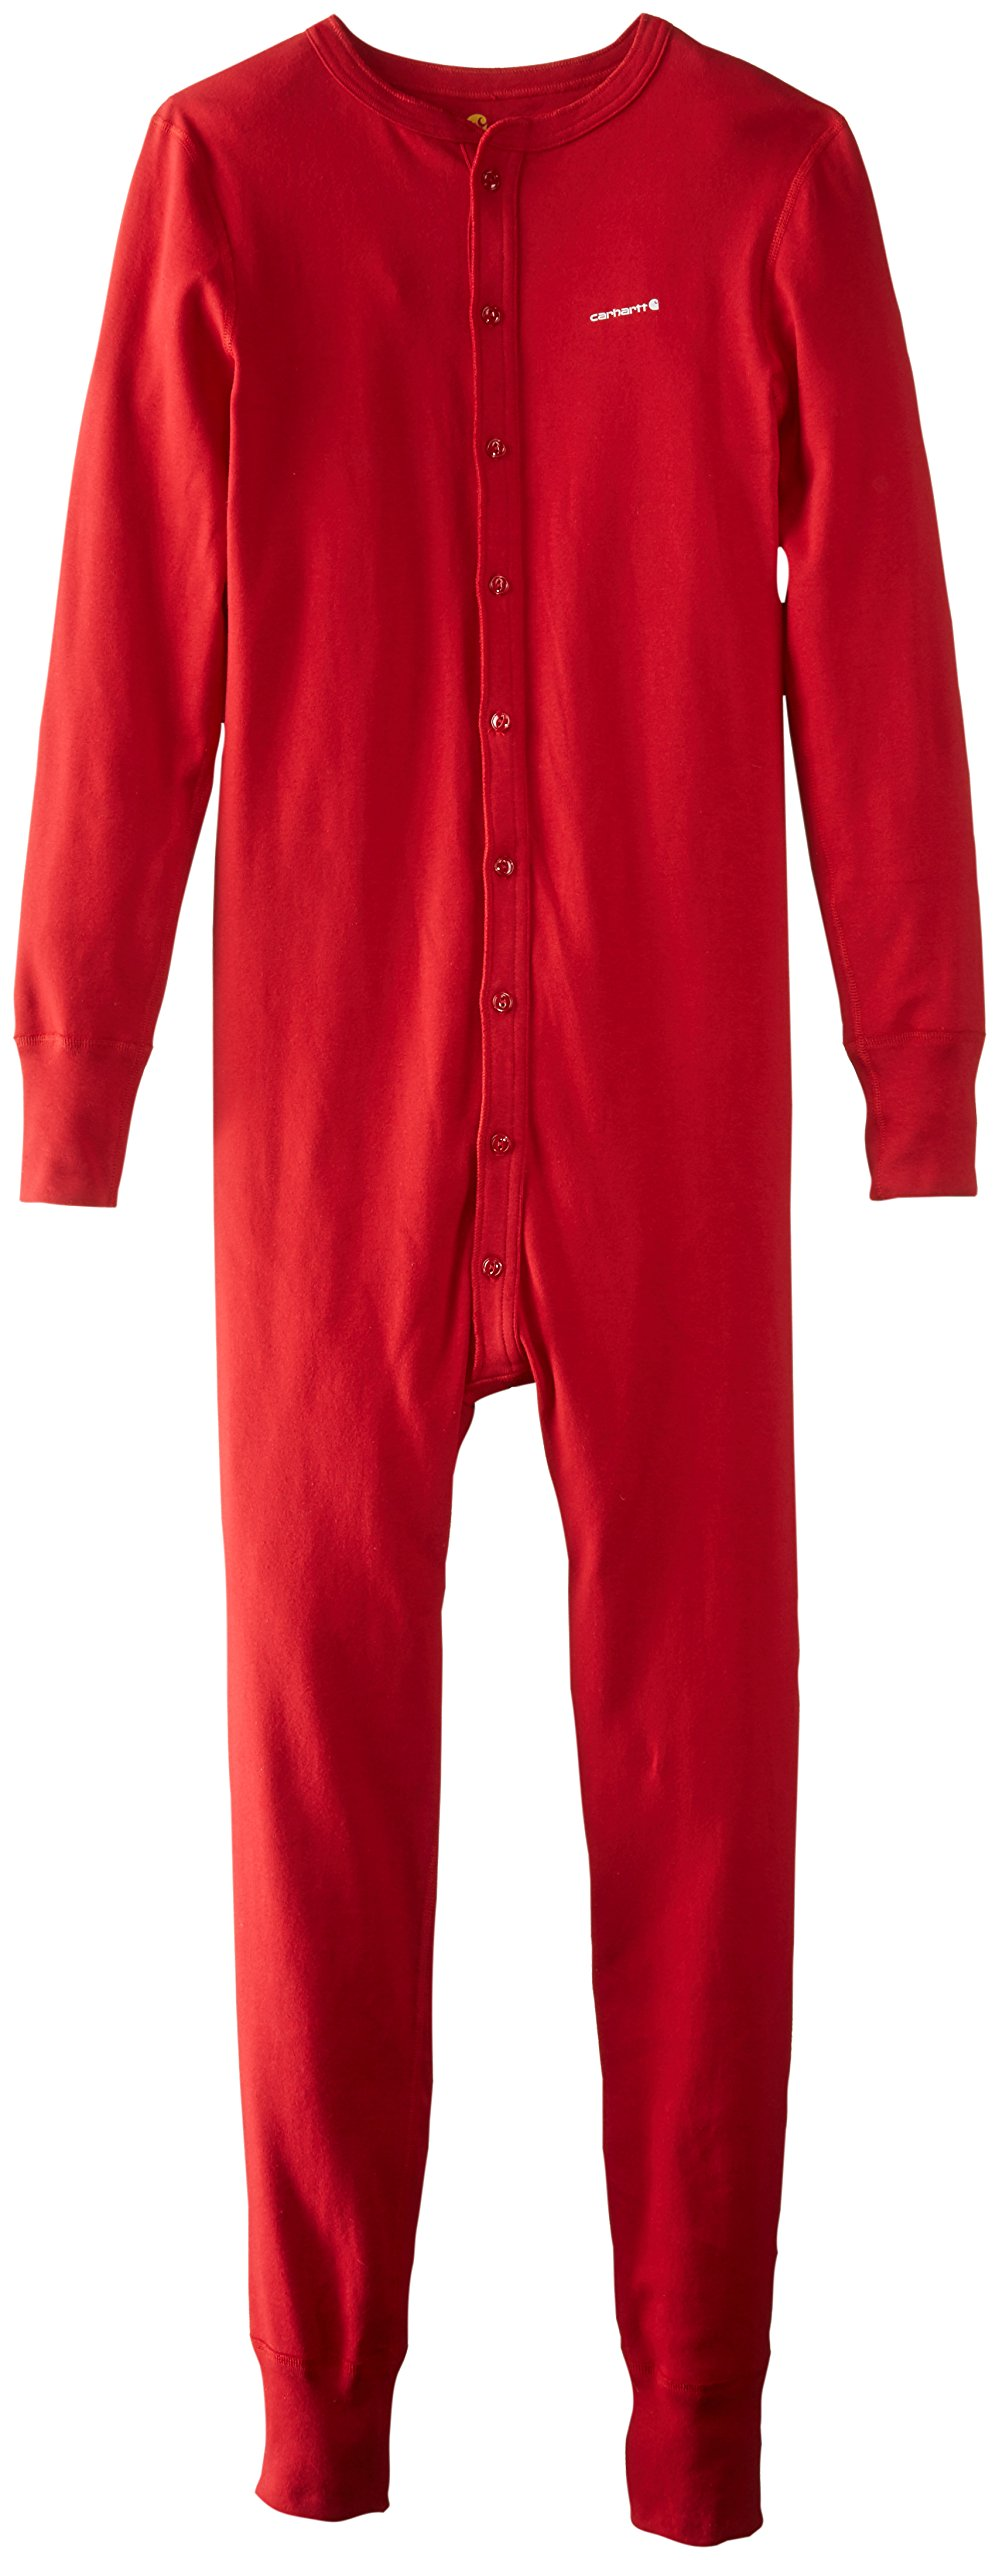 Carhartt Men's Midweight Cotton Union Suit, Red, X-Large Regular by Carhartt